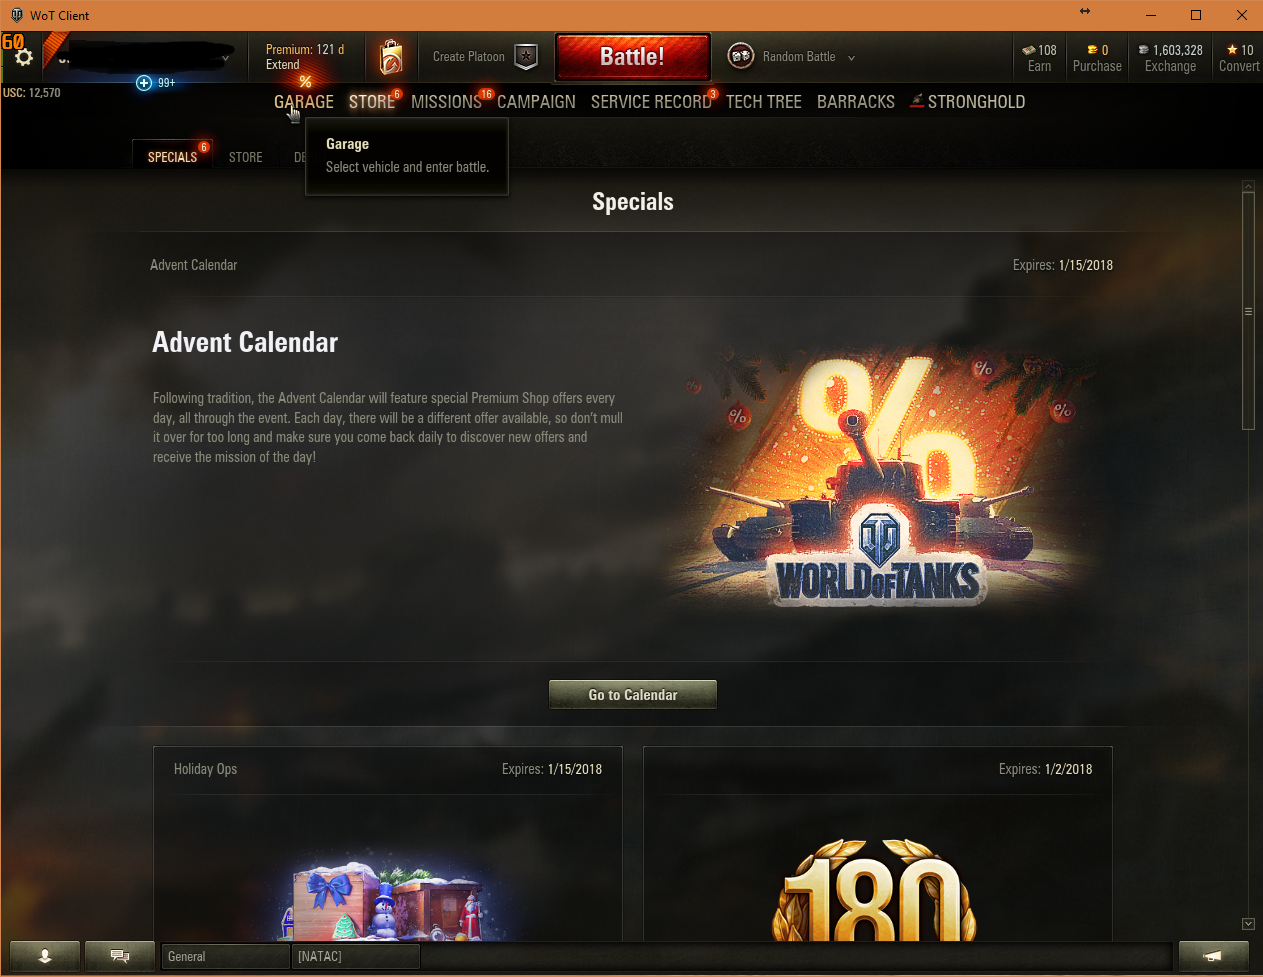 WOT Aslain Mods Installed - Garage tab Not Working - Issues & bug